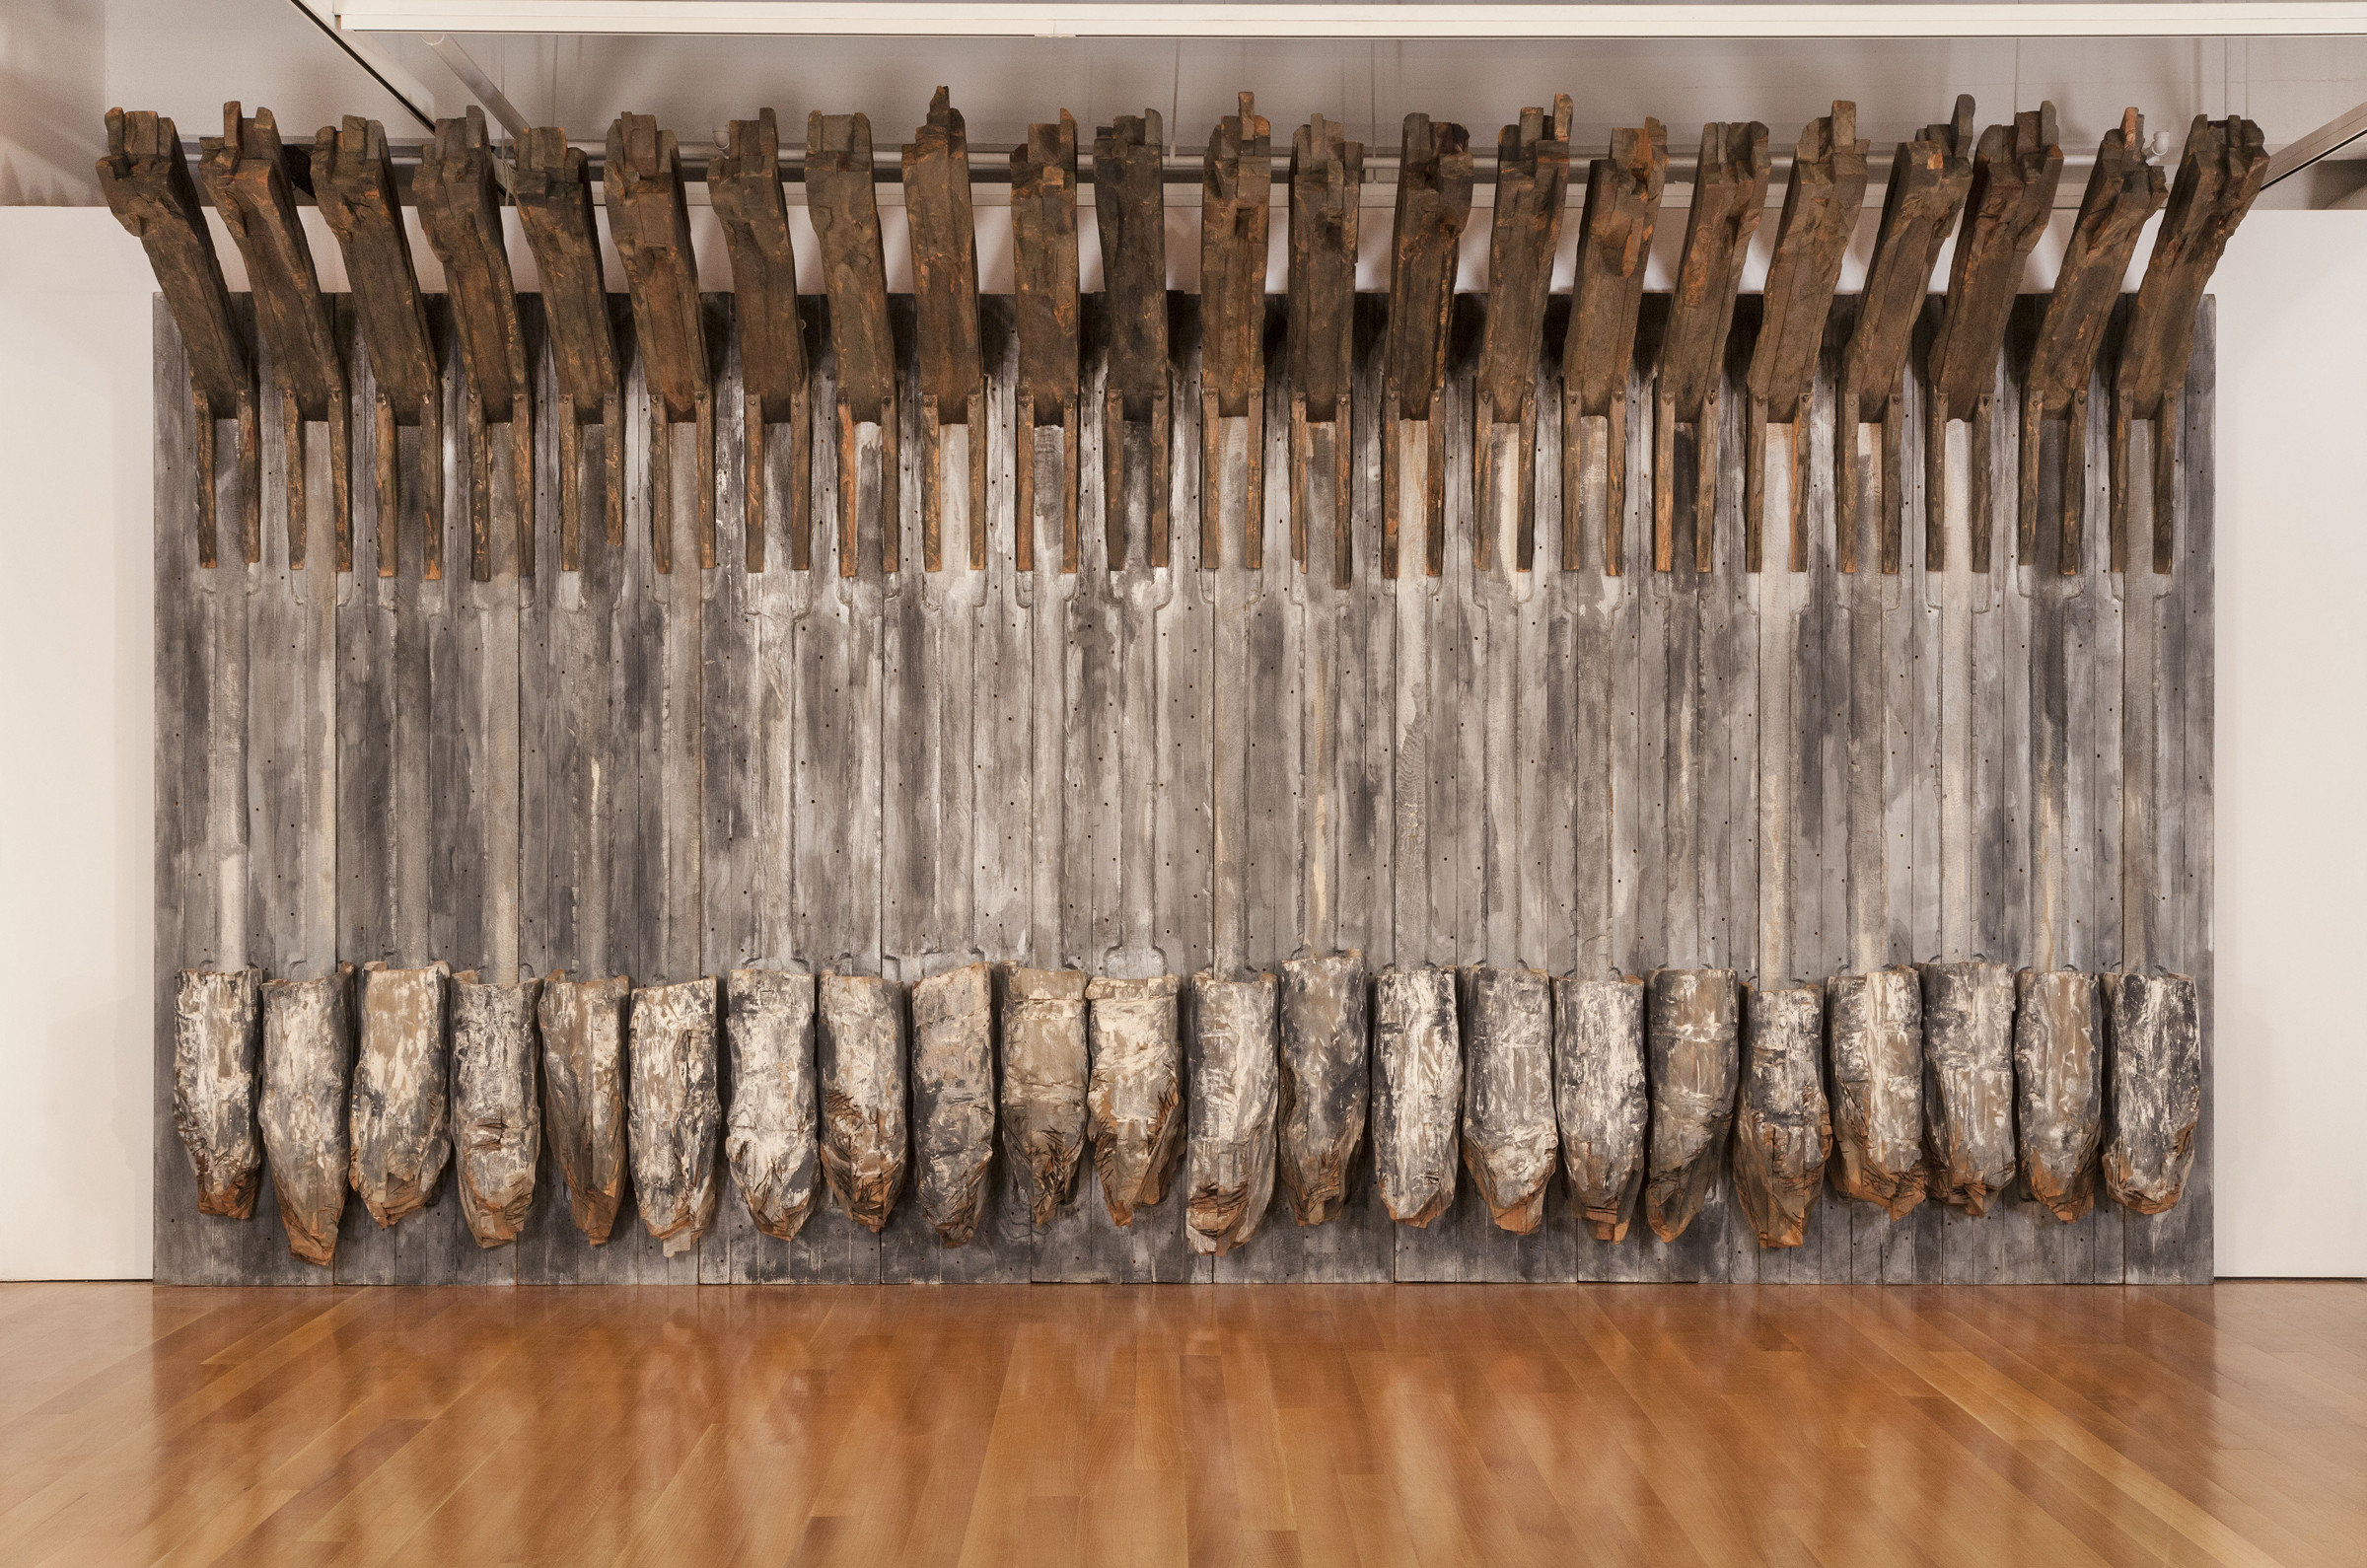 A massive sculpture made of bare cedar slats and painted cedar hunks arranged vertically, flat against a gallery wall.